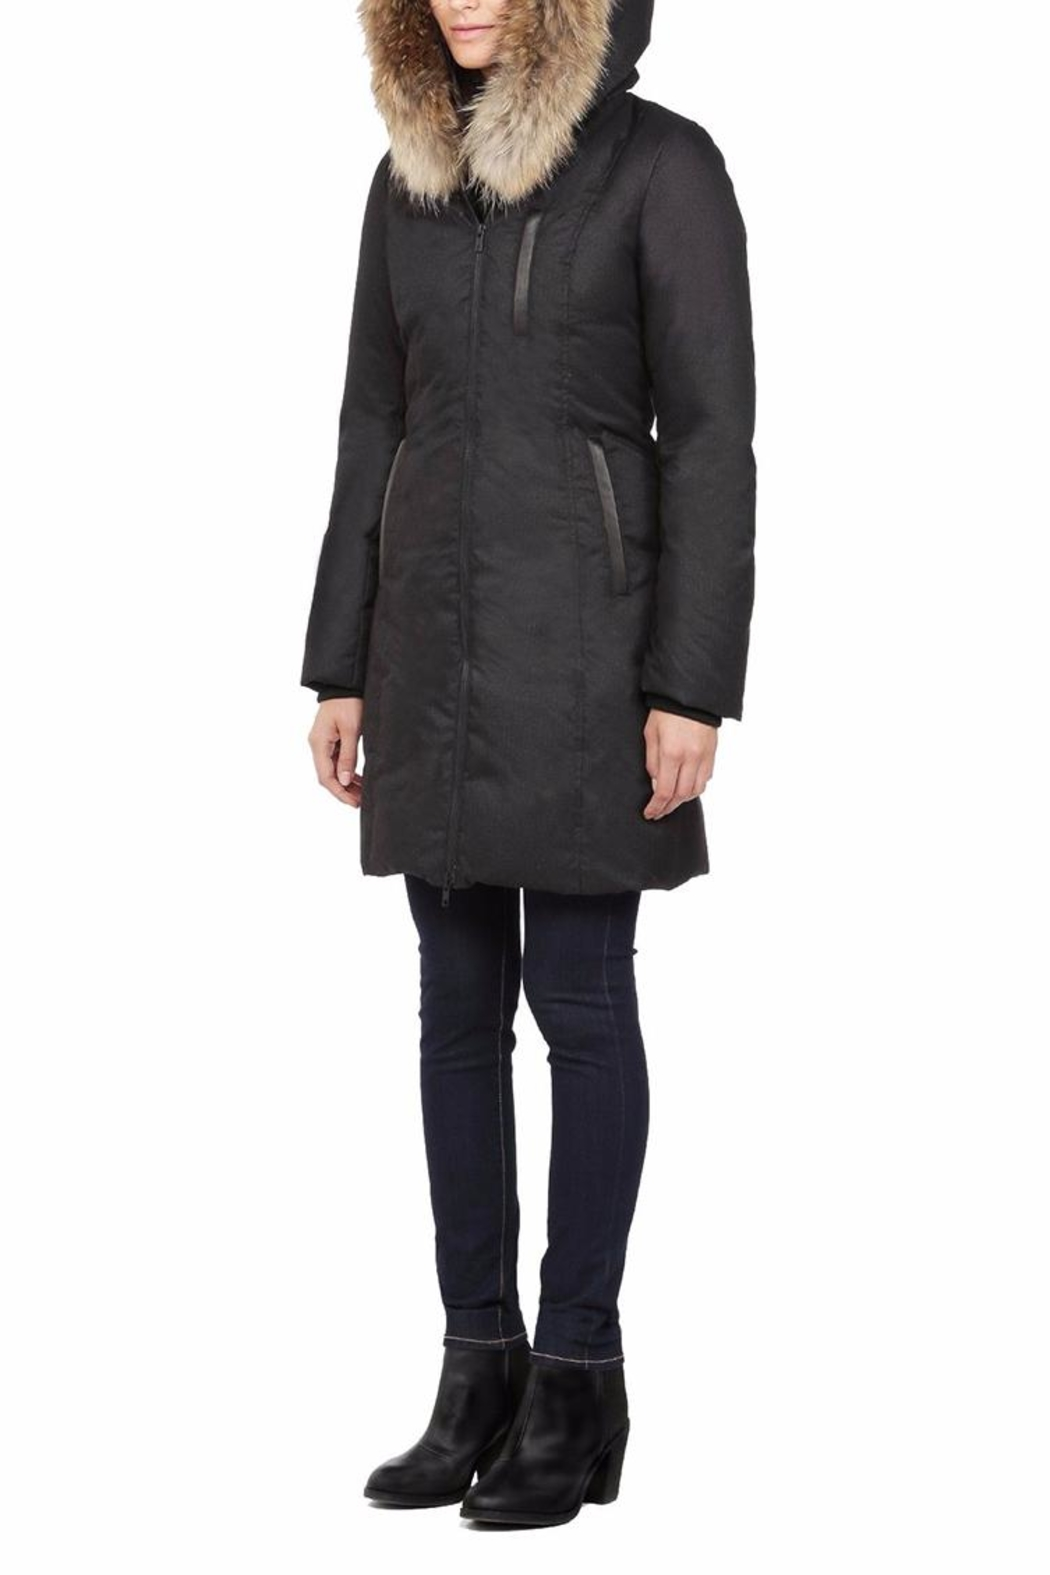 Soia & Kyo Chrissy Down Coat - Front Full Image